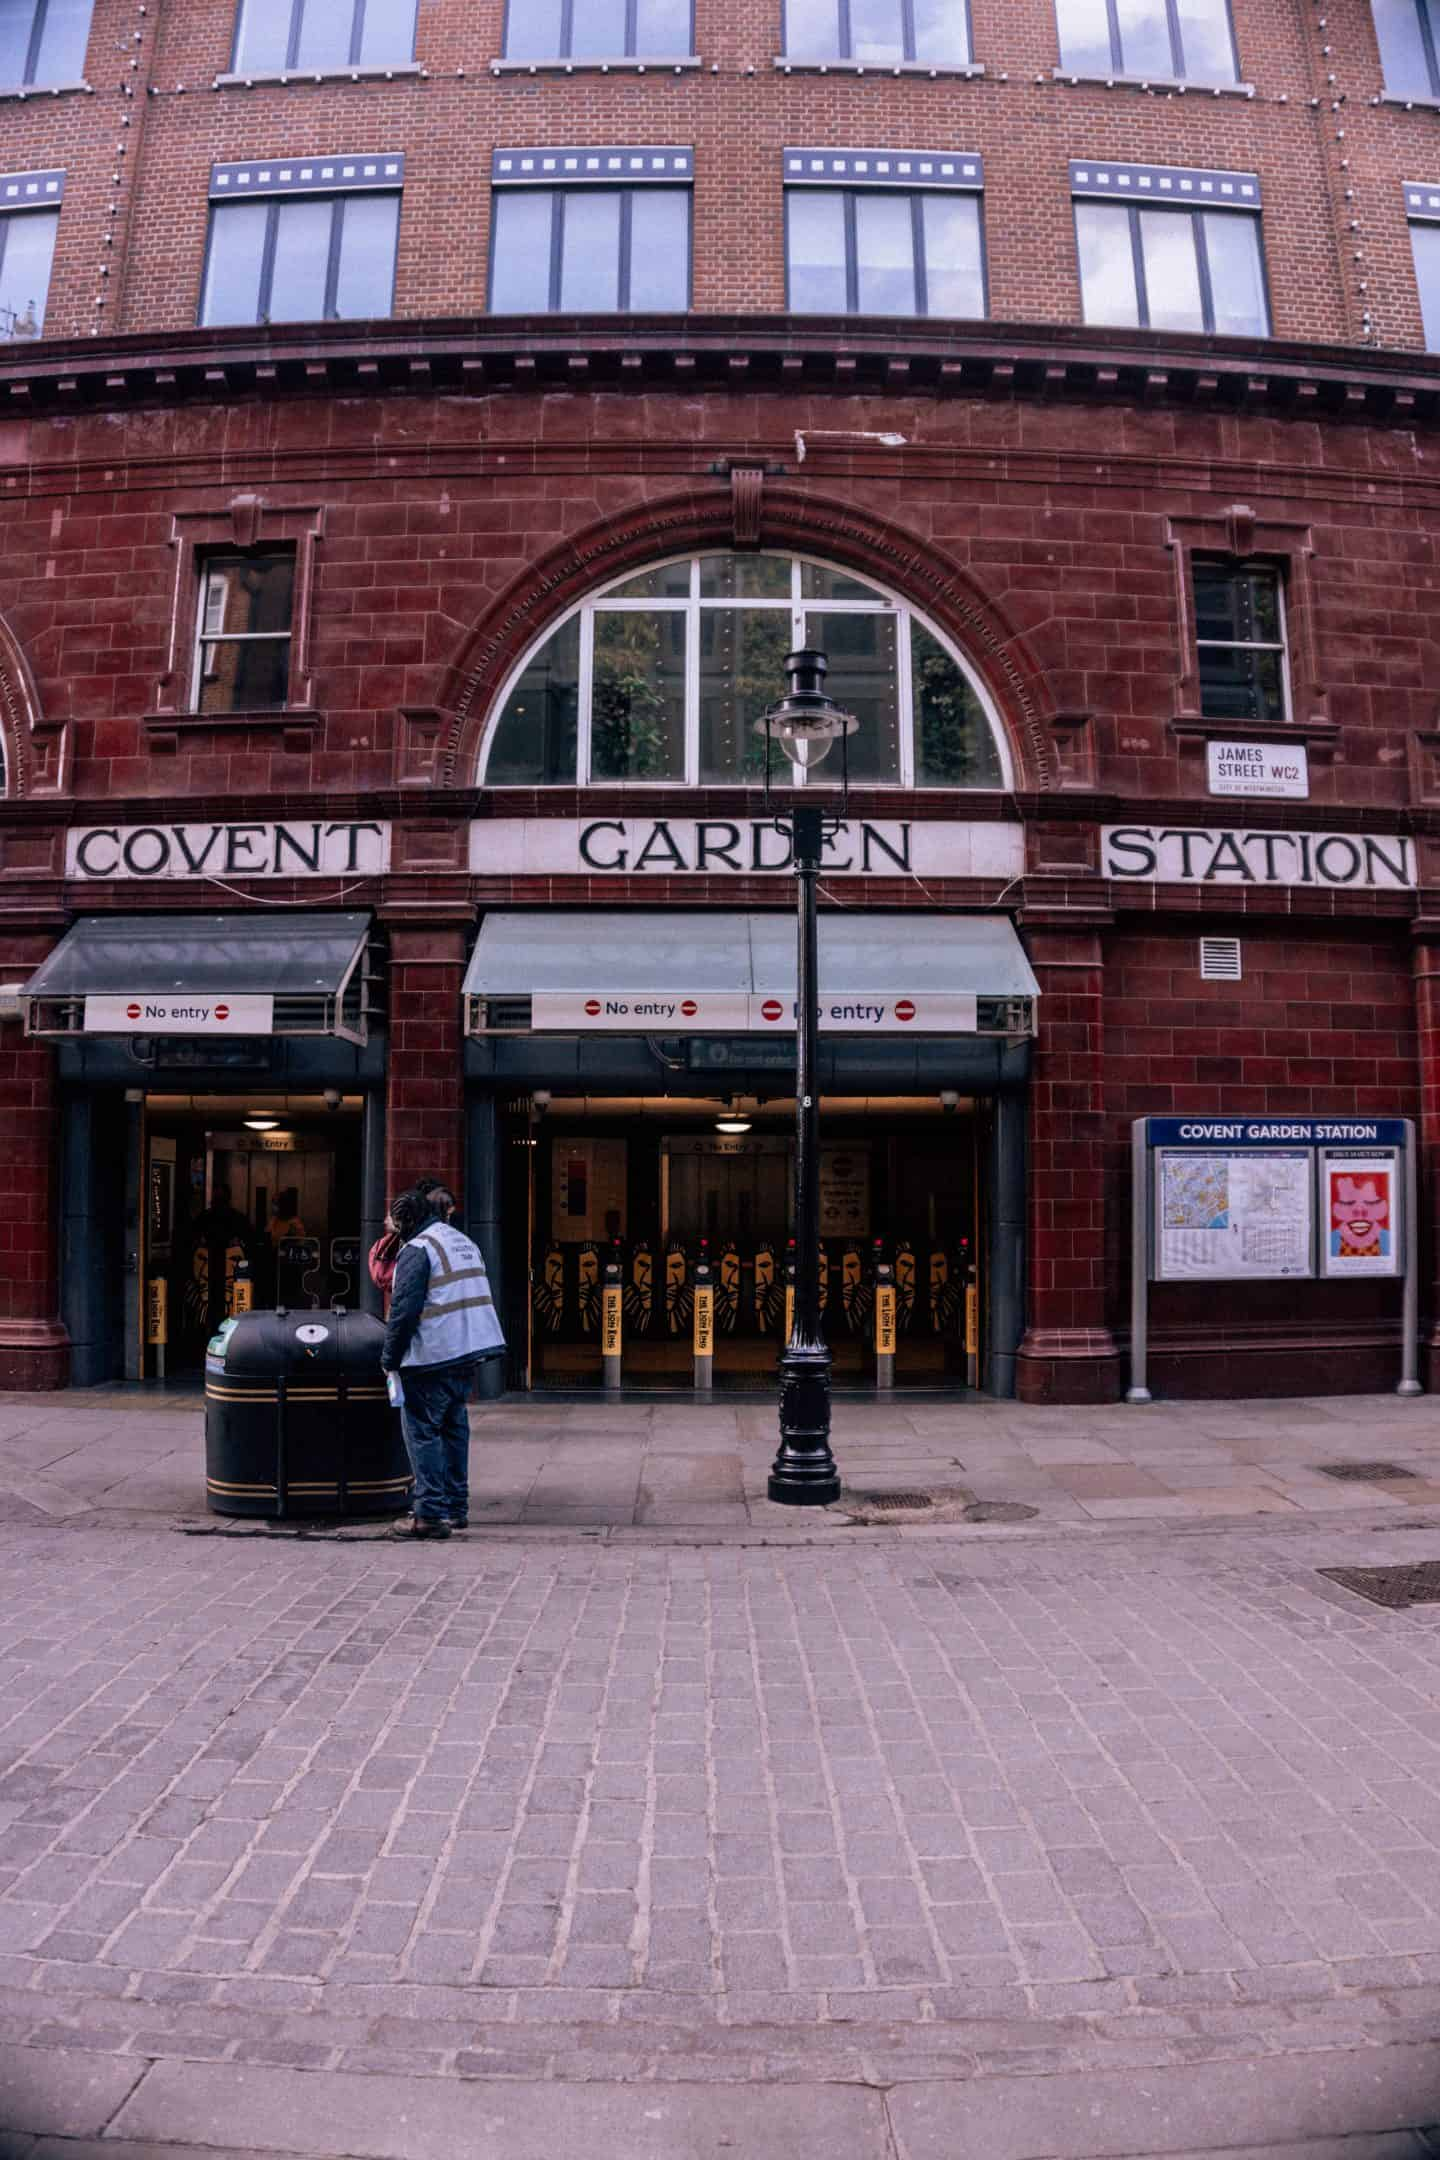 Covent Garden Station